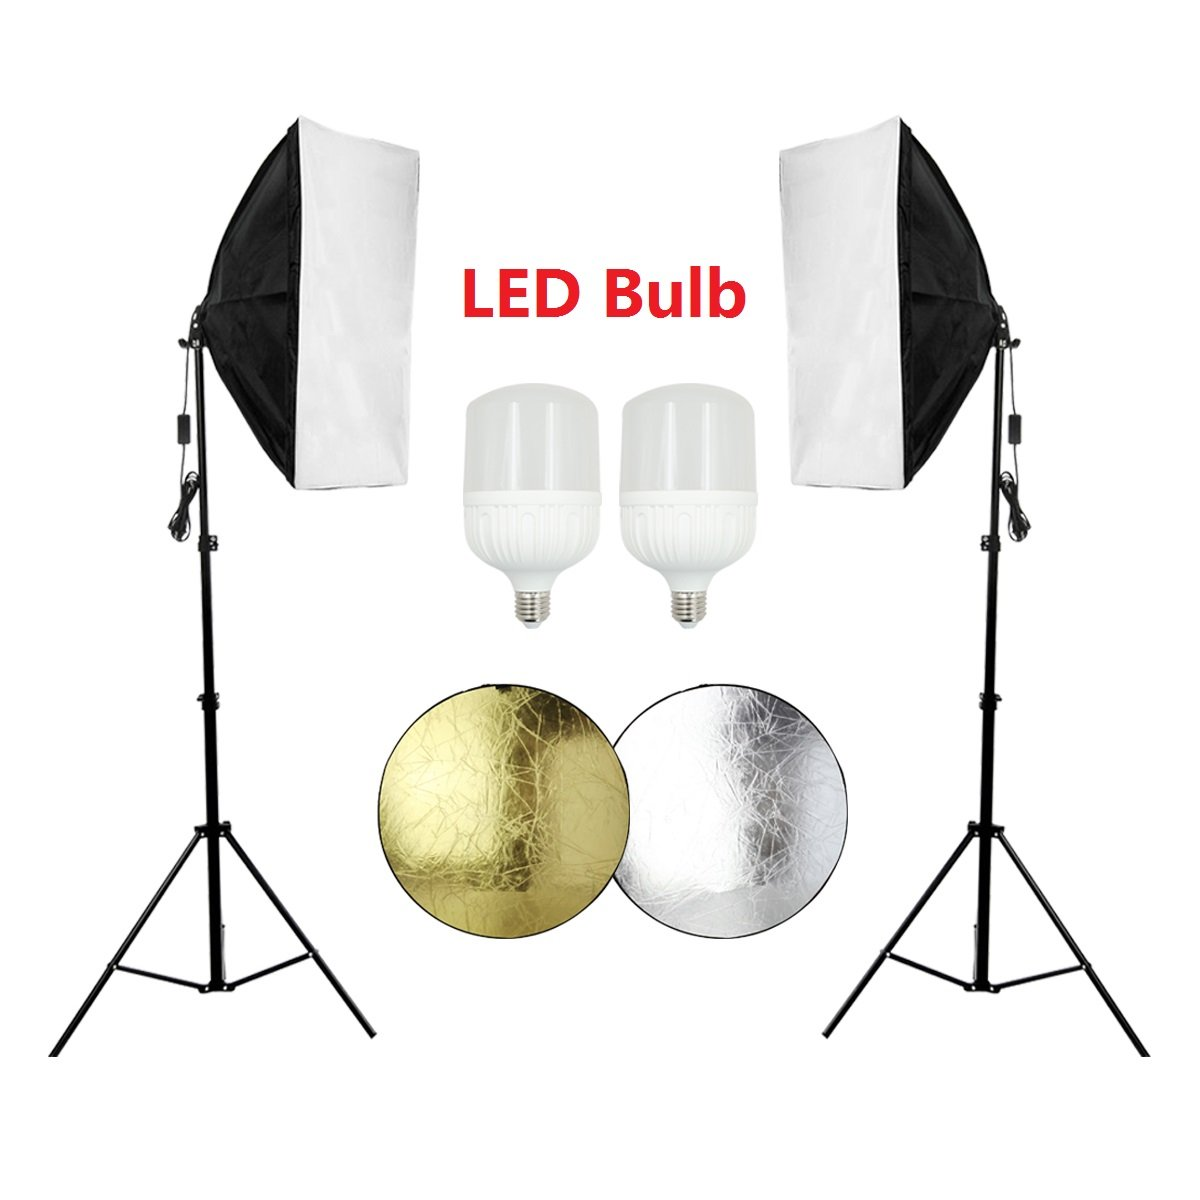 Photography Continuous Softbox Lighting Kit 20 x 28 inch Soft Box with 2 pcs LED Softbox Light Bulb for Professional Photo Studio Equipment Video Portrait Lighting with 2 in 1 Reflector